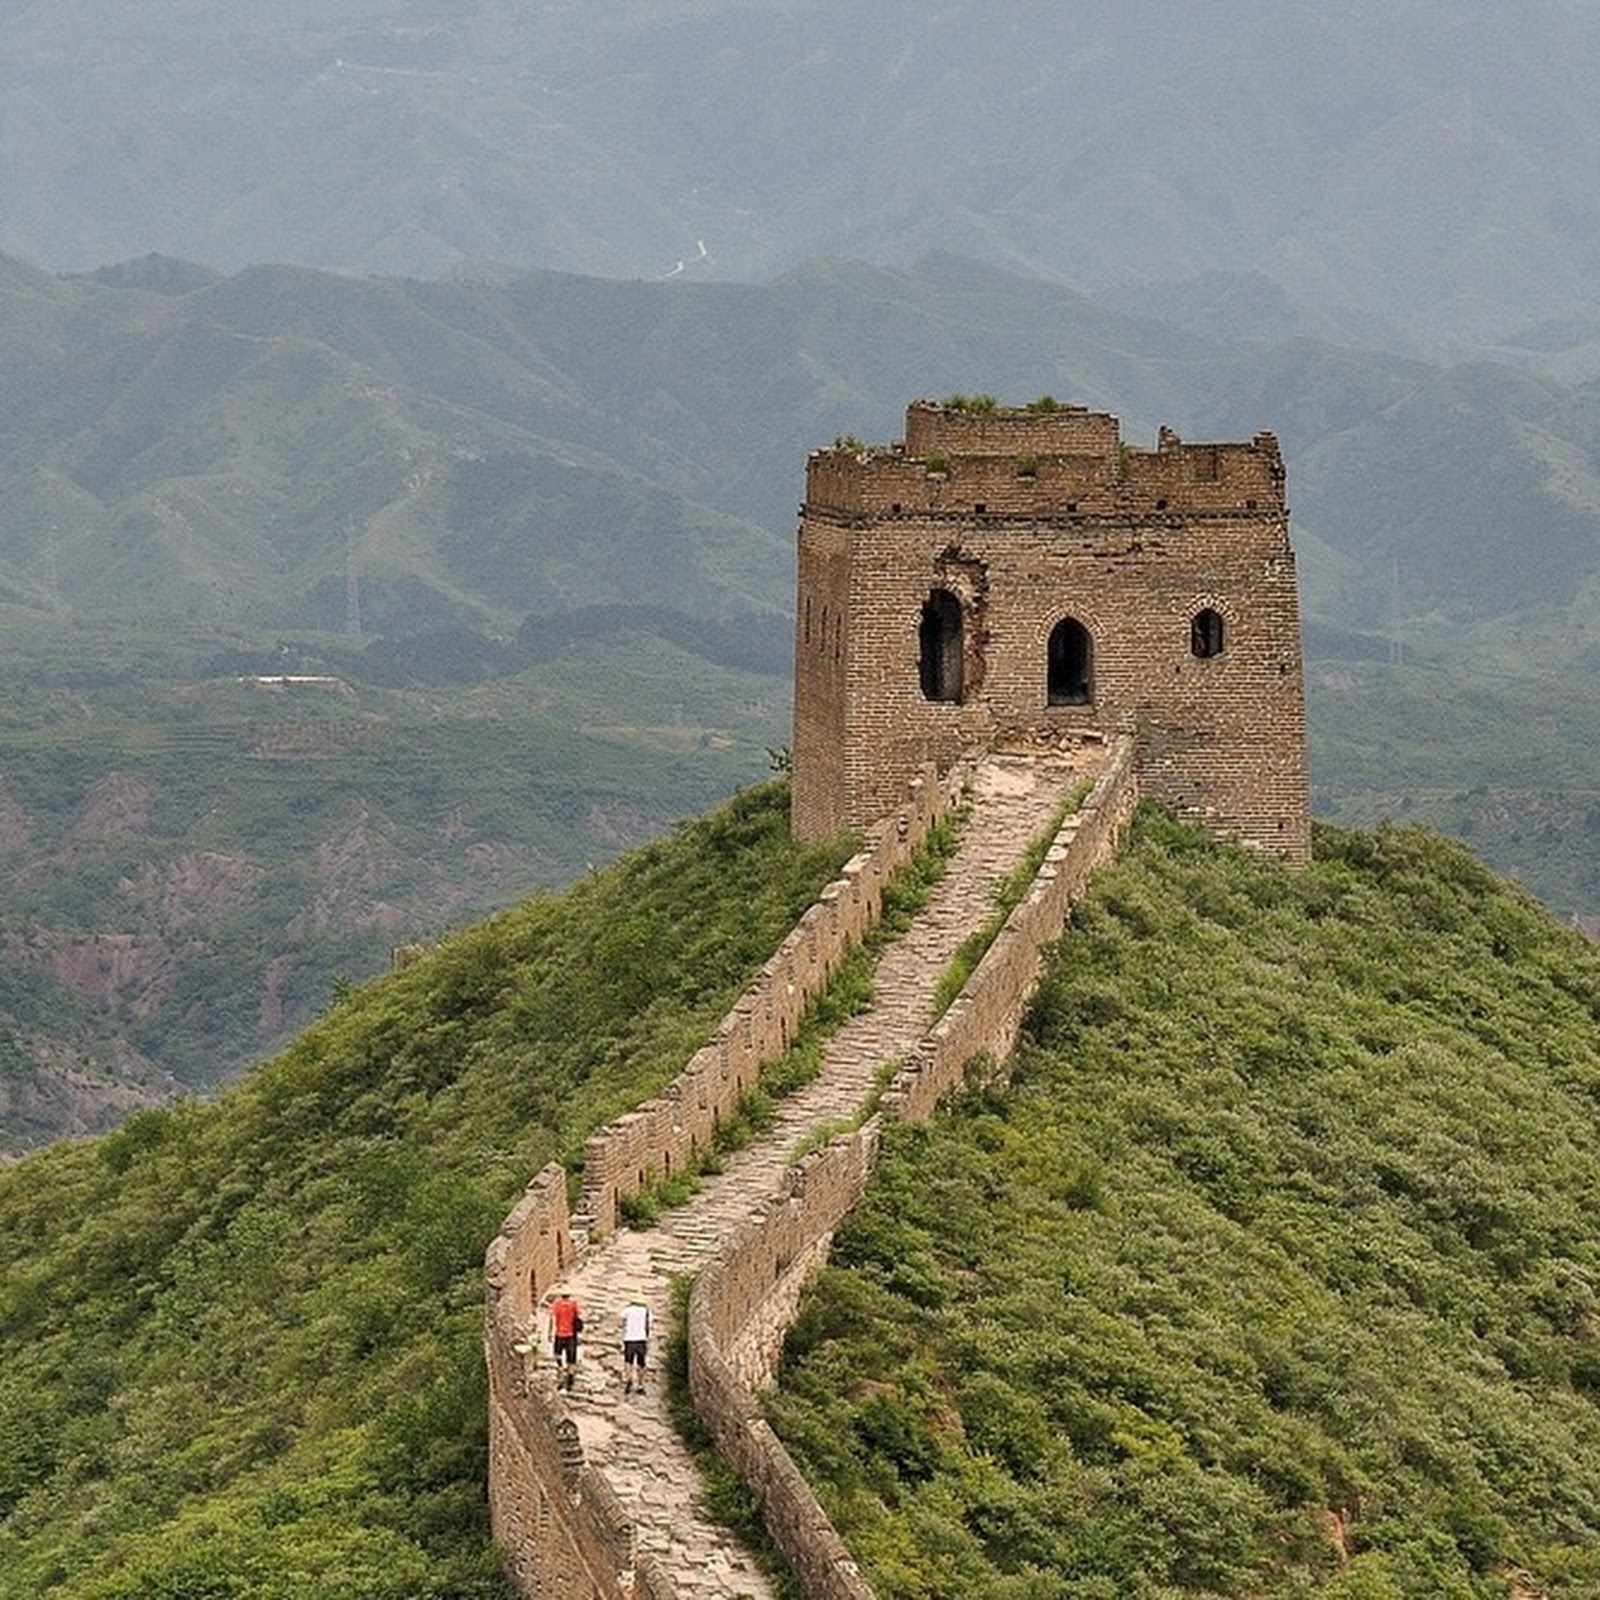 The Great Wall of China Hoax